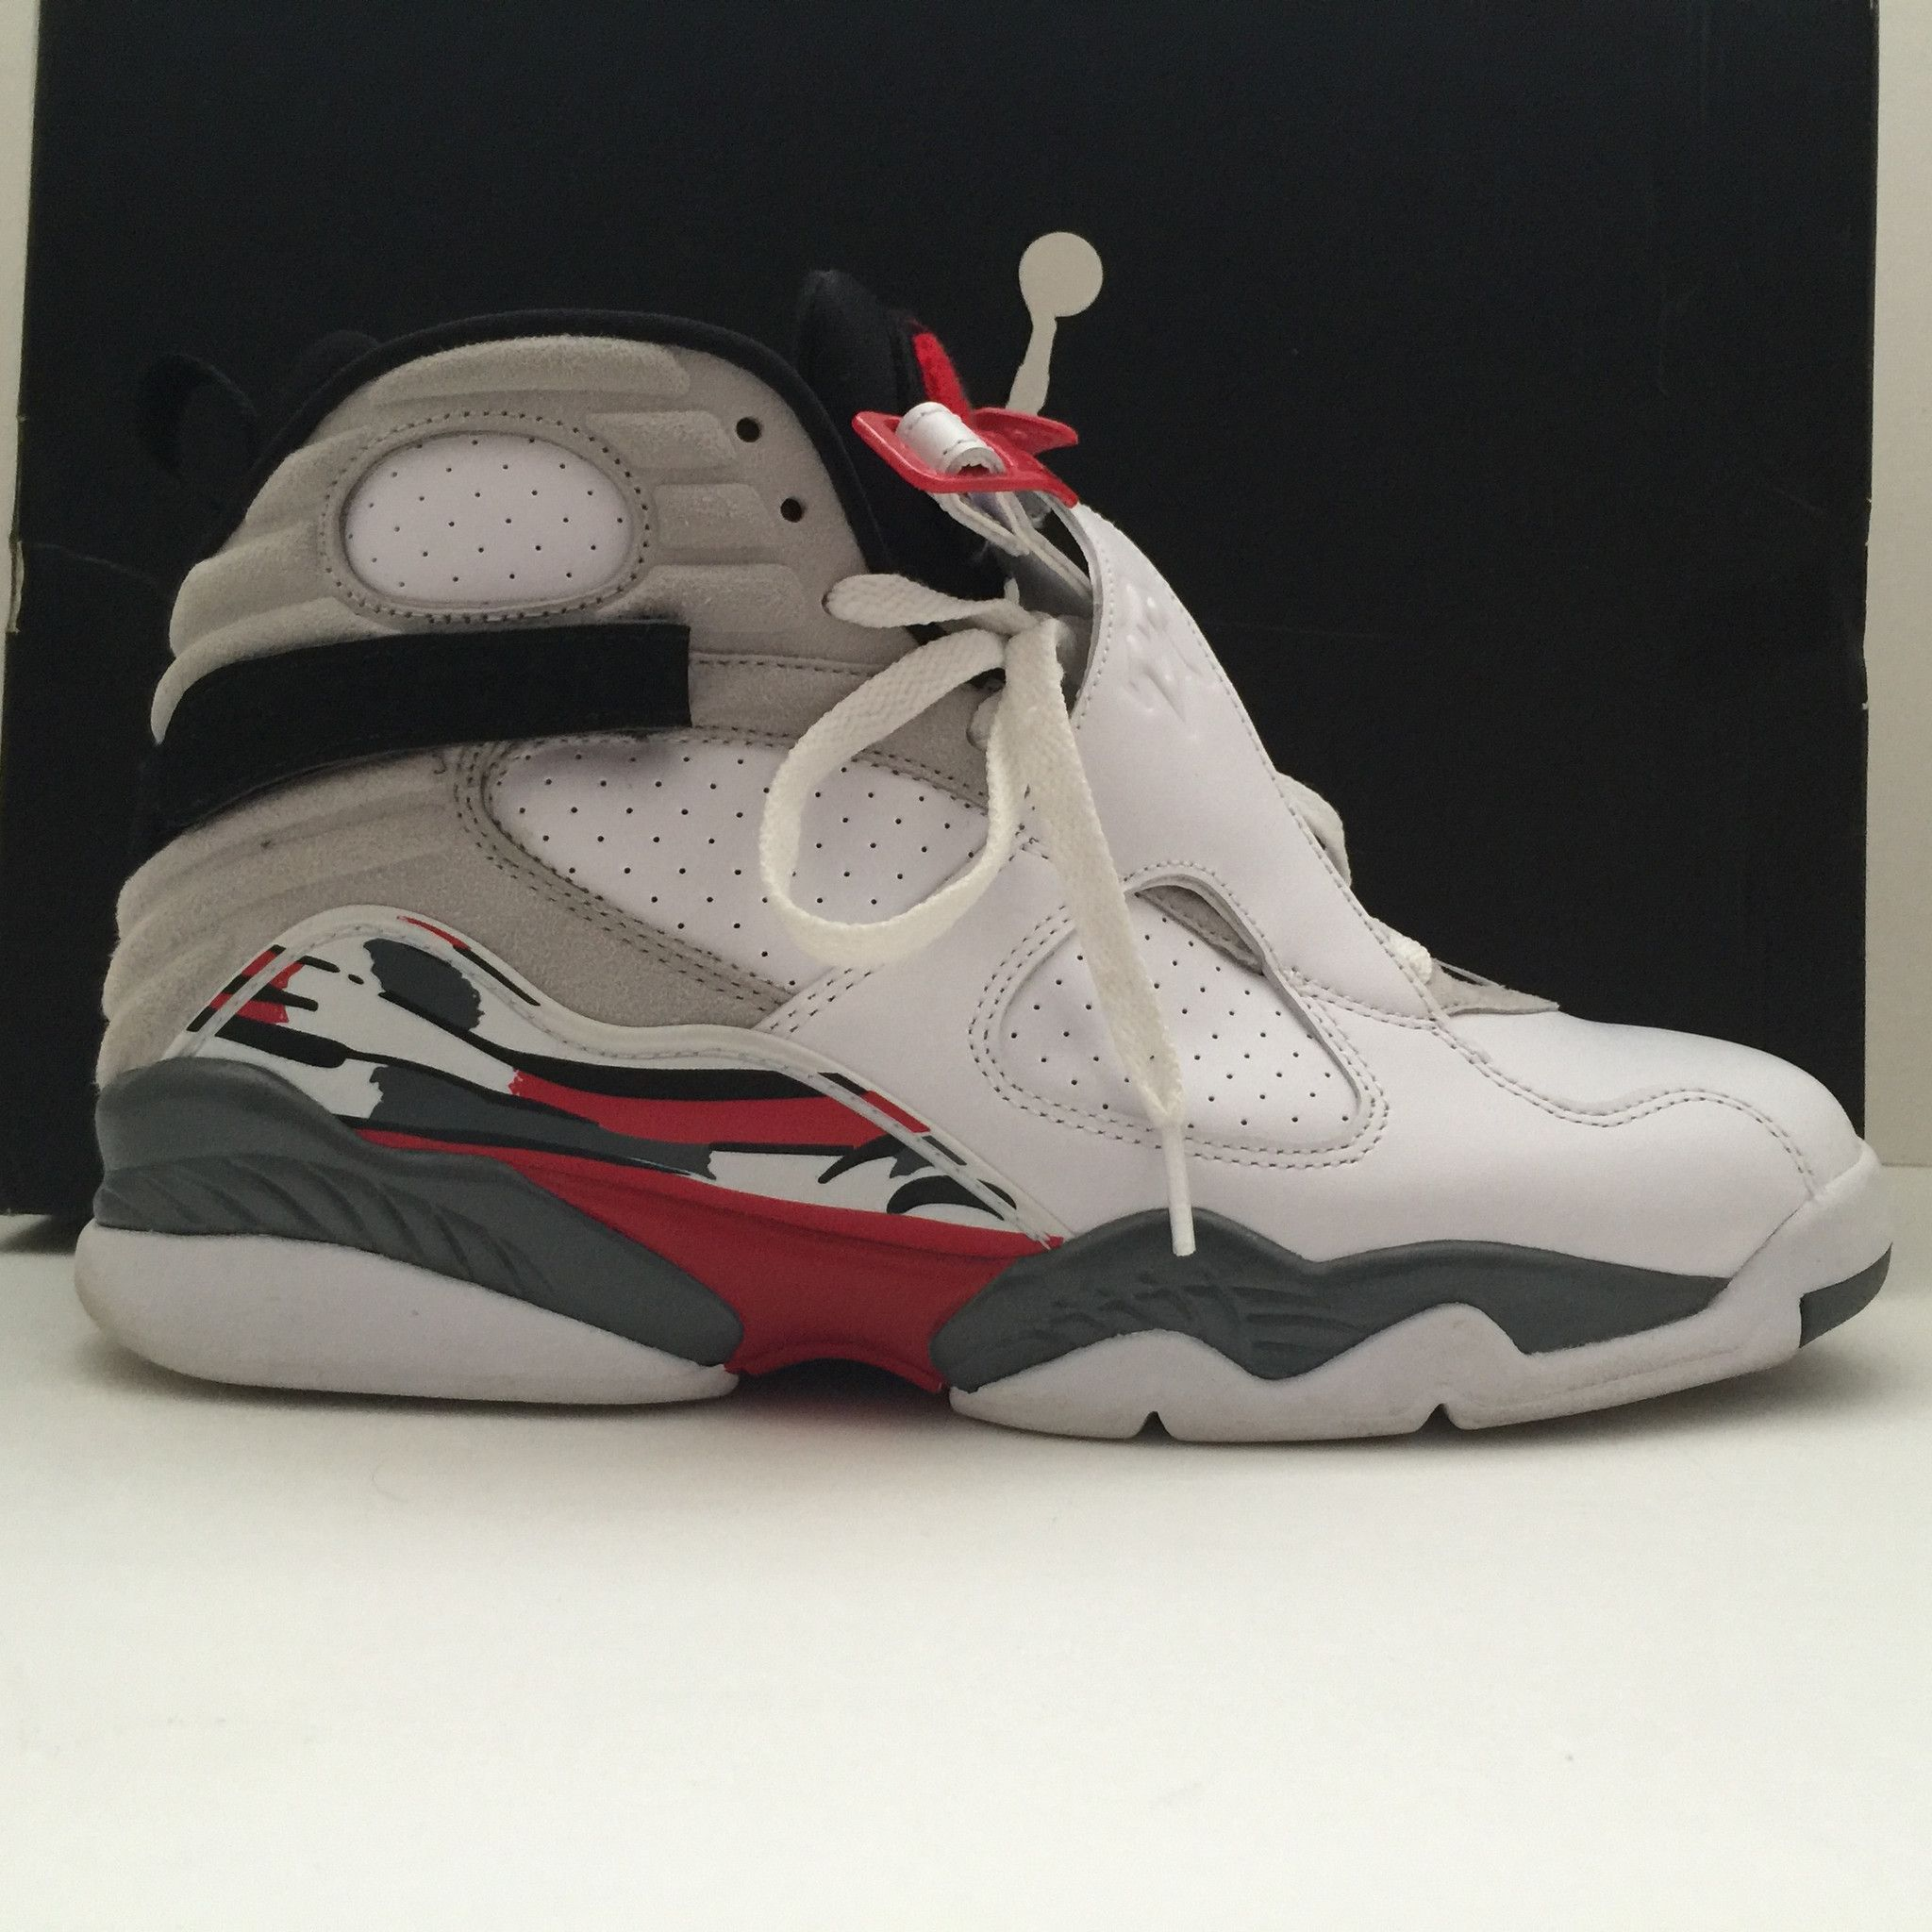 368f0e70280 Nike Air Jordan 8 VIII Retro Bugs Bunny Size 11 Used - Great Condition